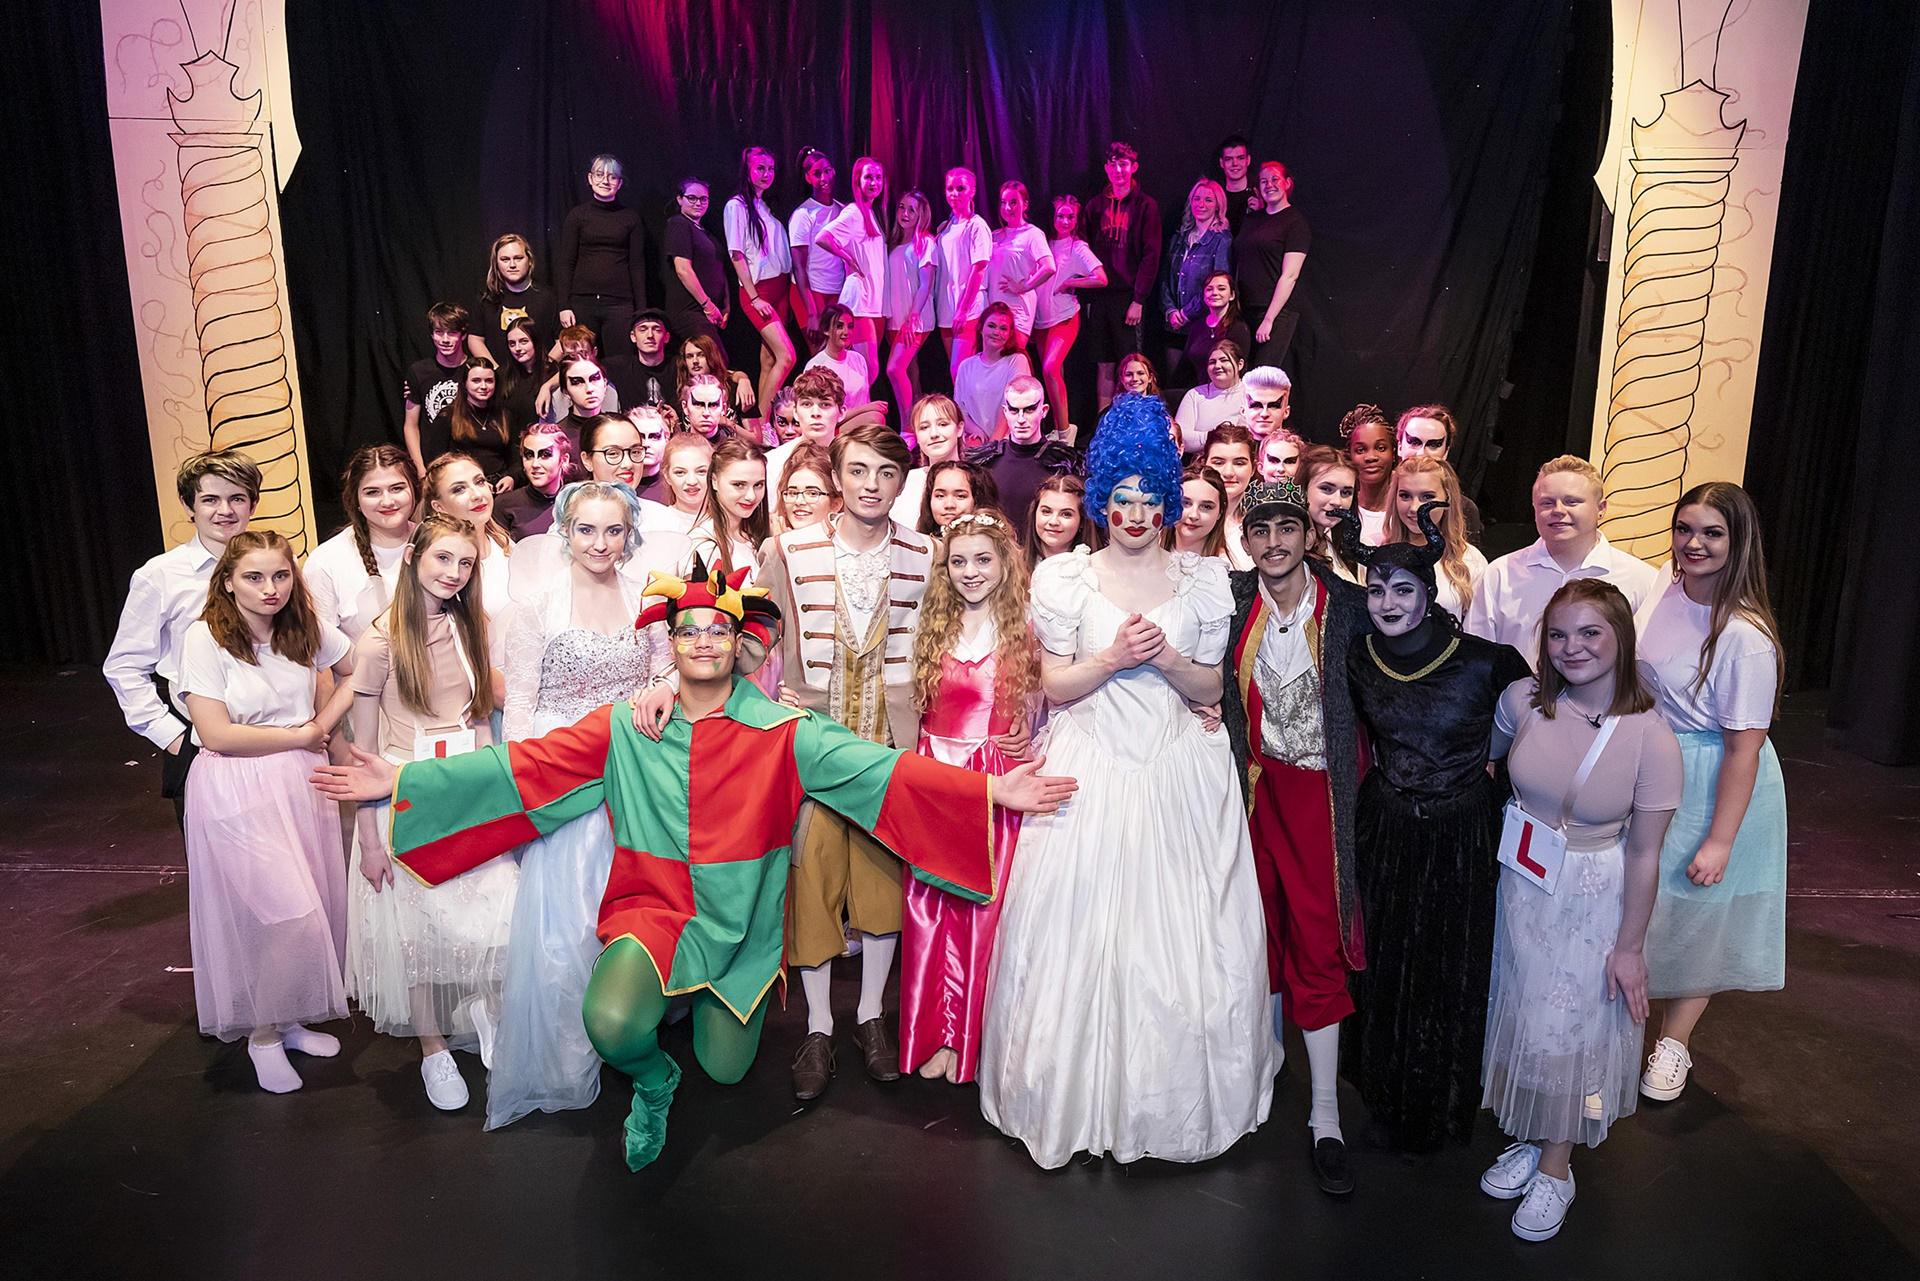 Andover College's pantomime Sleeping Beauty